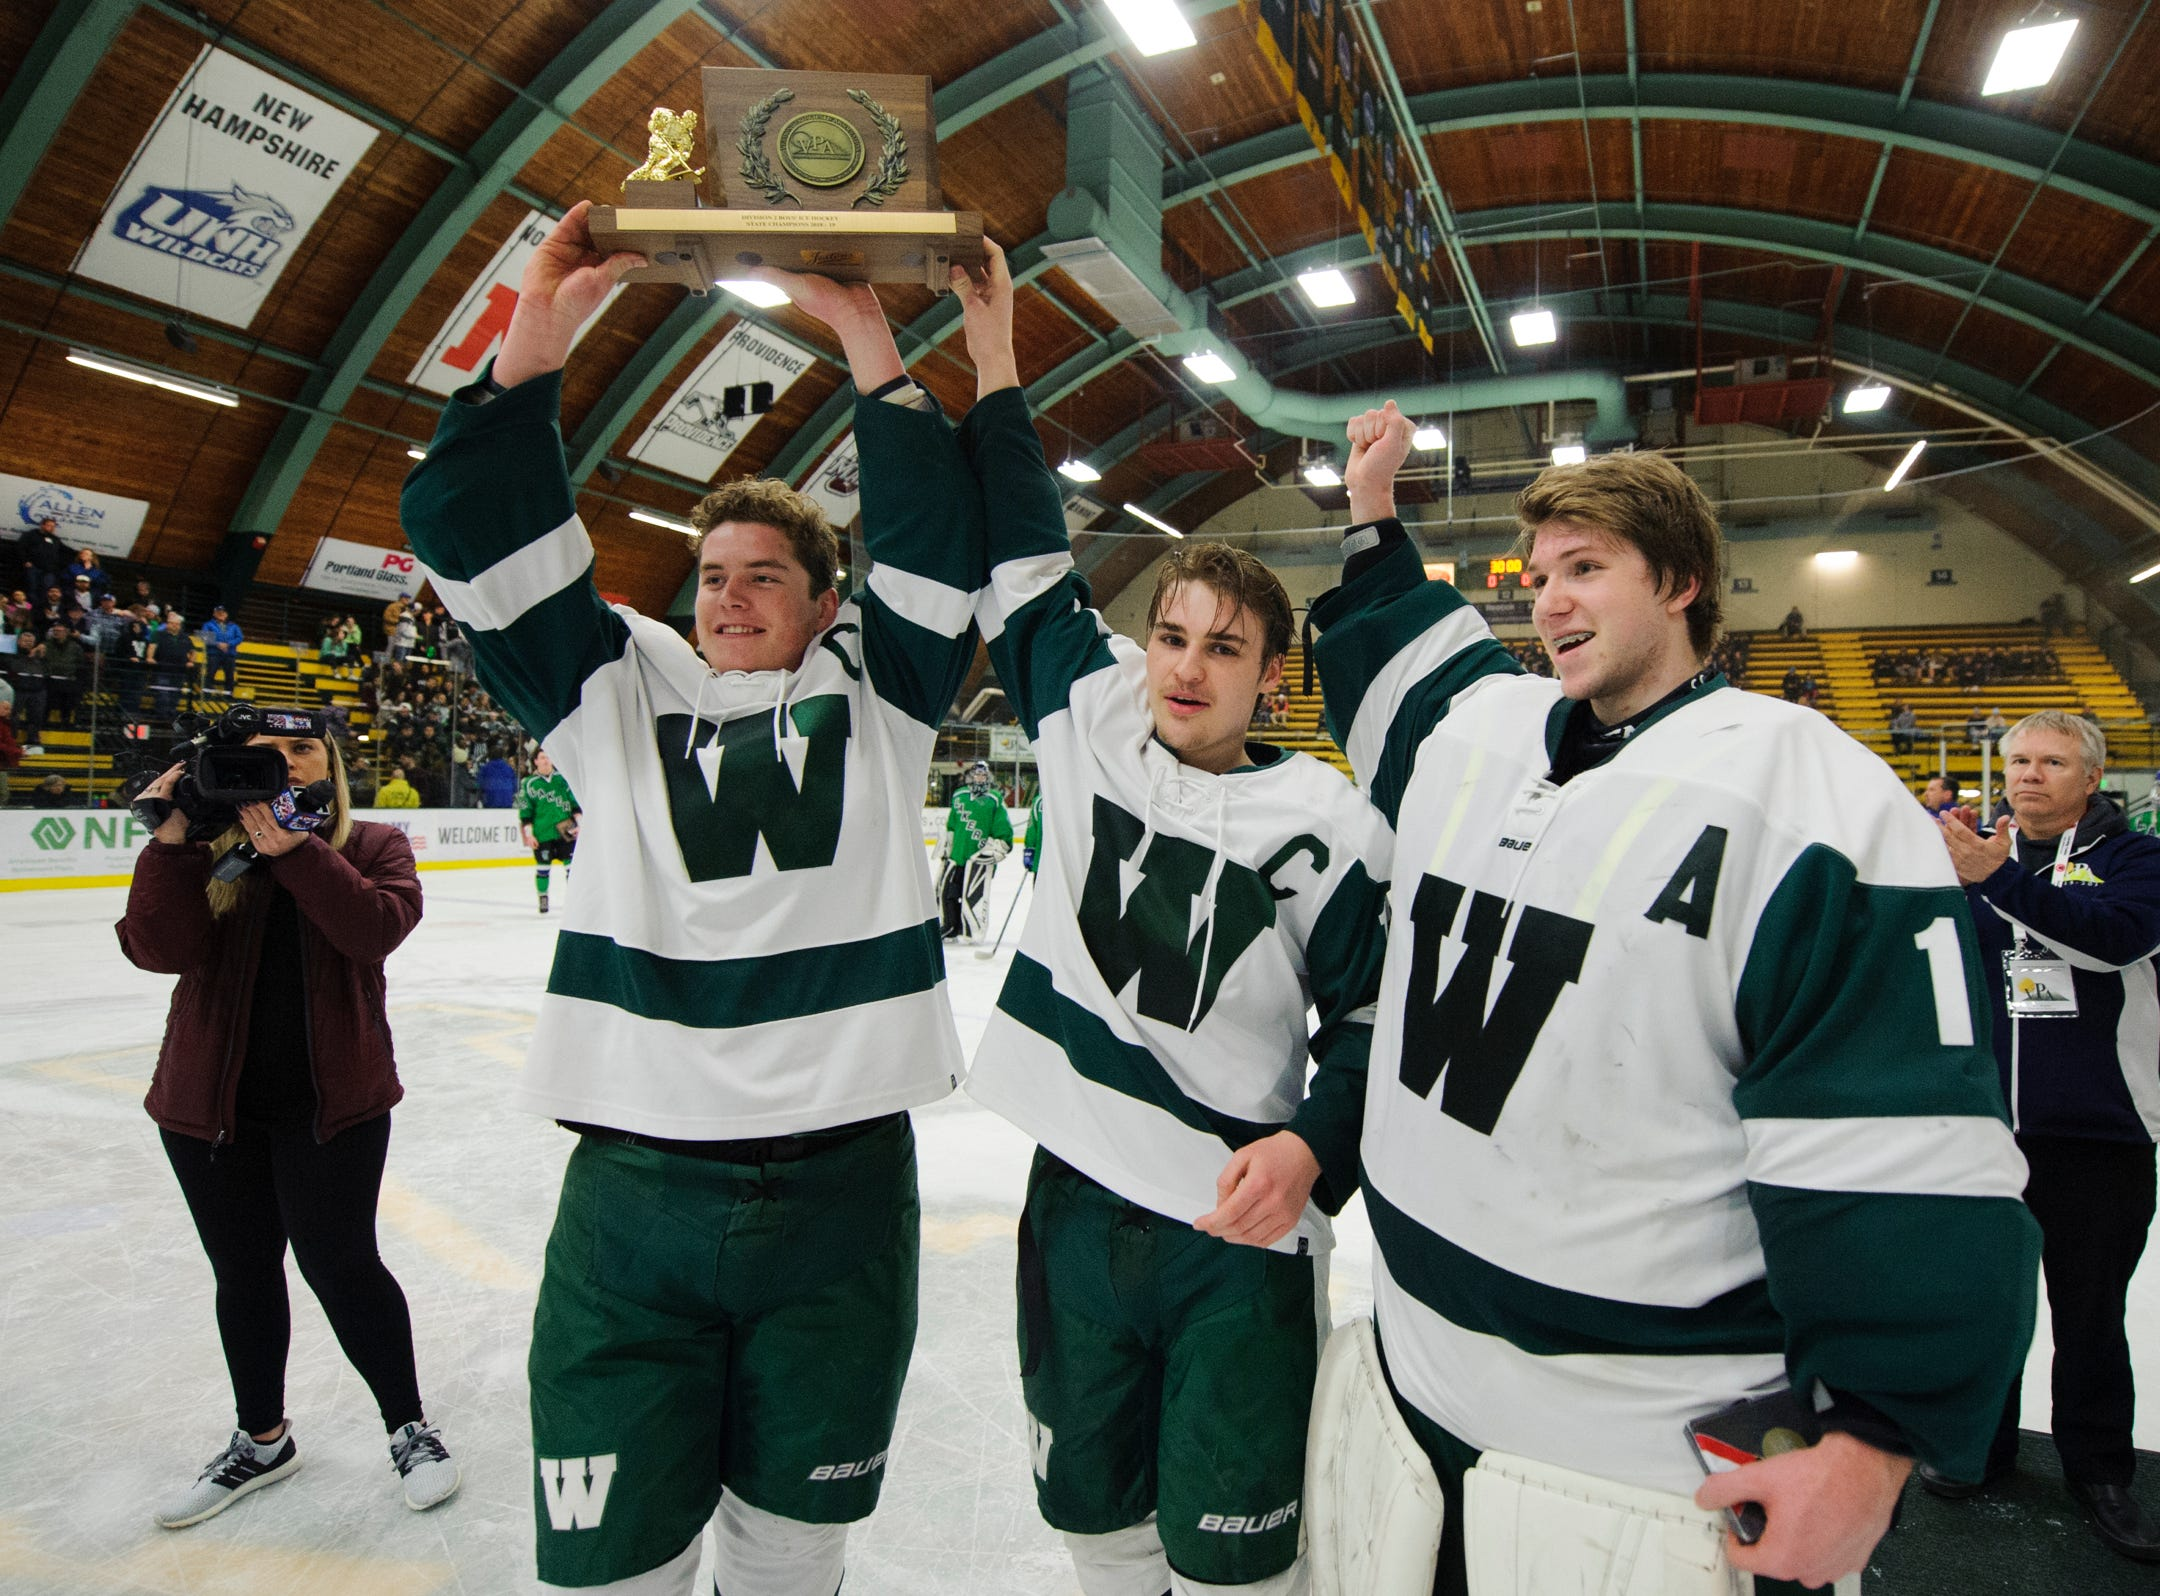 Woodstock captains hold up the championship trophy during the DII boys hockey championship game between the Woodstock Wasps and the Colchester Lakers at Gutterson Field House on Wednesday night March 13, 2019 in Burlington, Vermont.